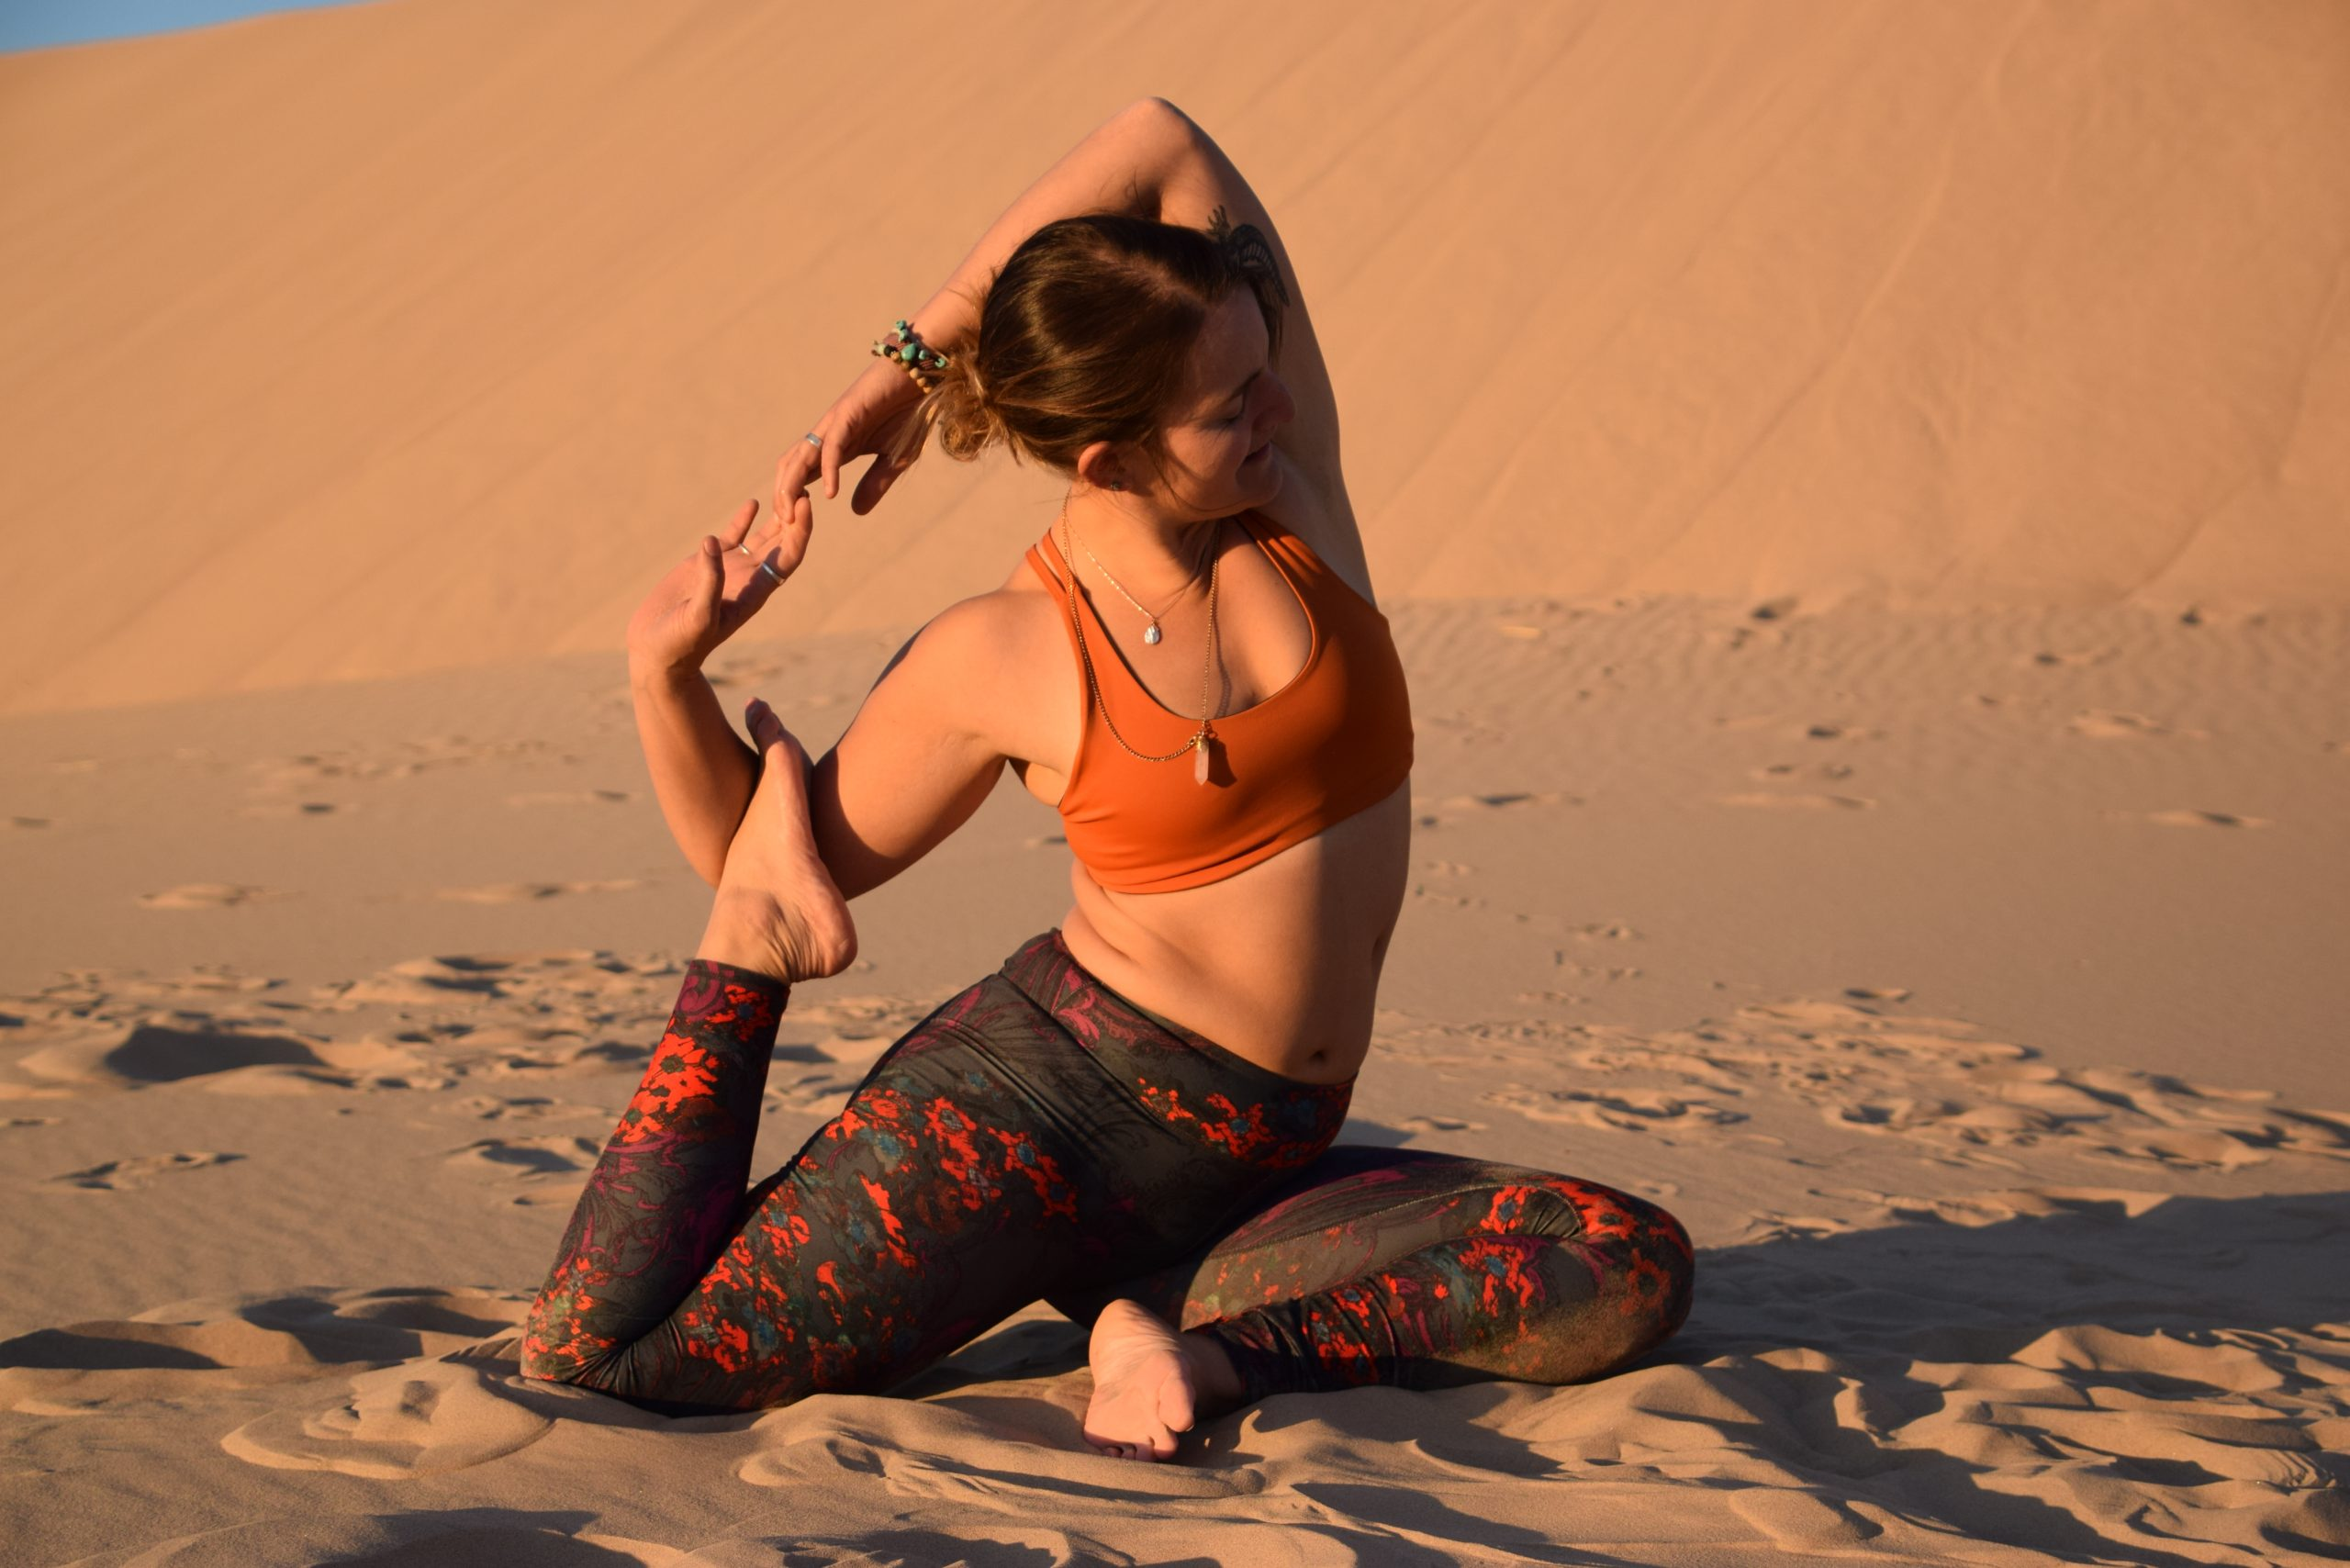 Têra Kaia ambassador and wildlife ecologist Betsy Dionne doing a yoga pose in her basewear top sports bra by a desert sand dune